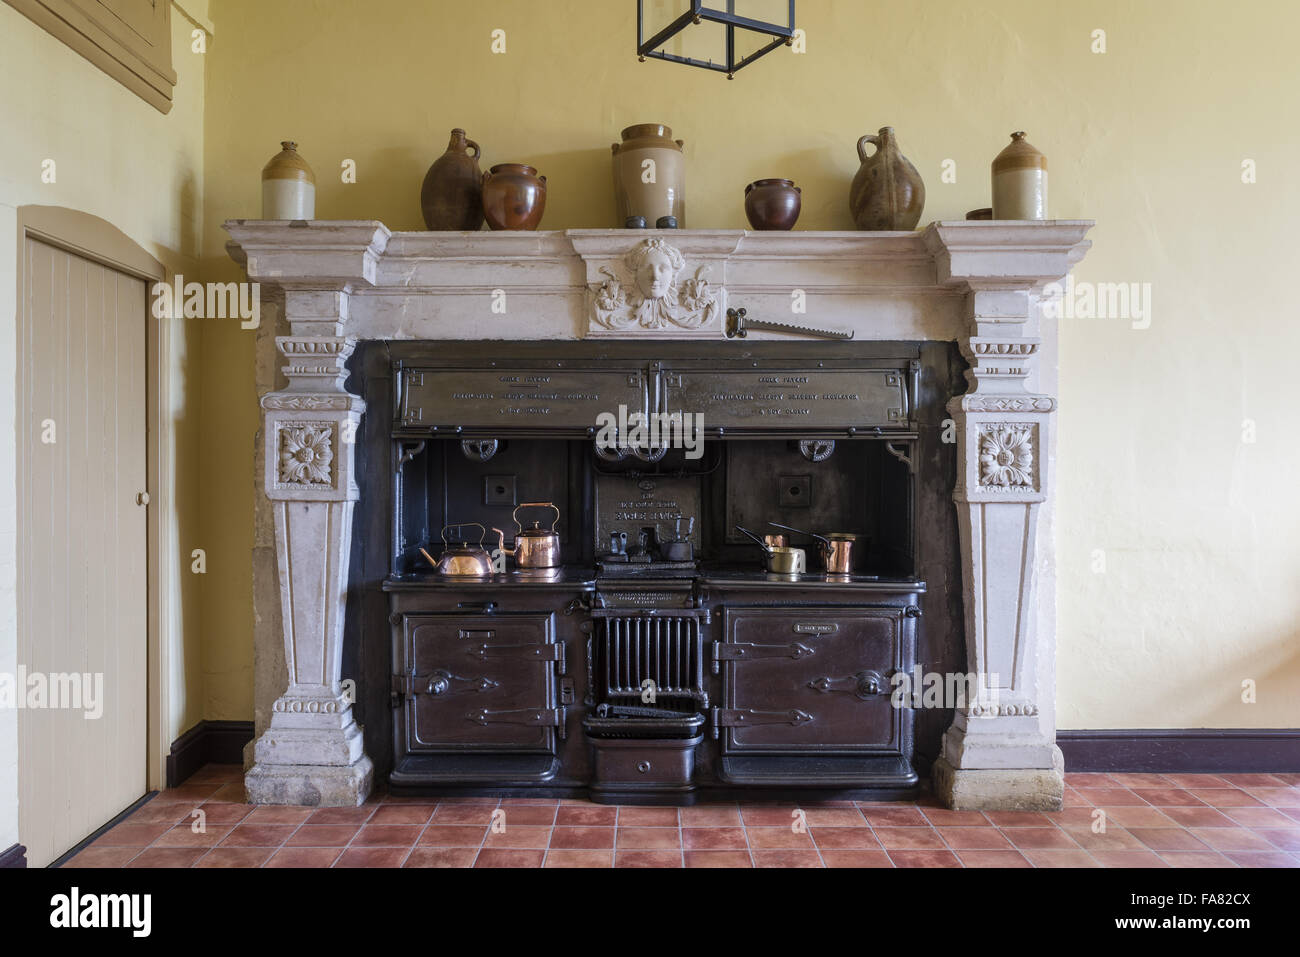 Victorian kitchen range set into an 18th-century chimneypiece, Oxburgh Hall, Norfolk. Formerly Oxburgh's kitchen, - Stock Image